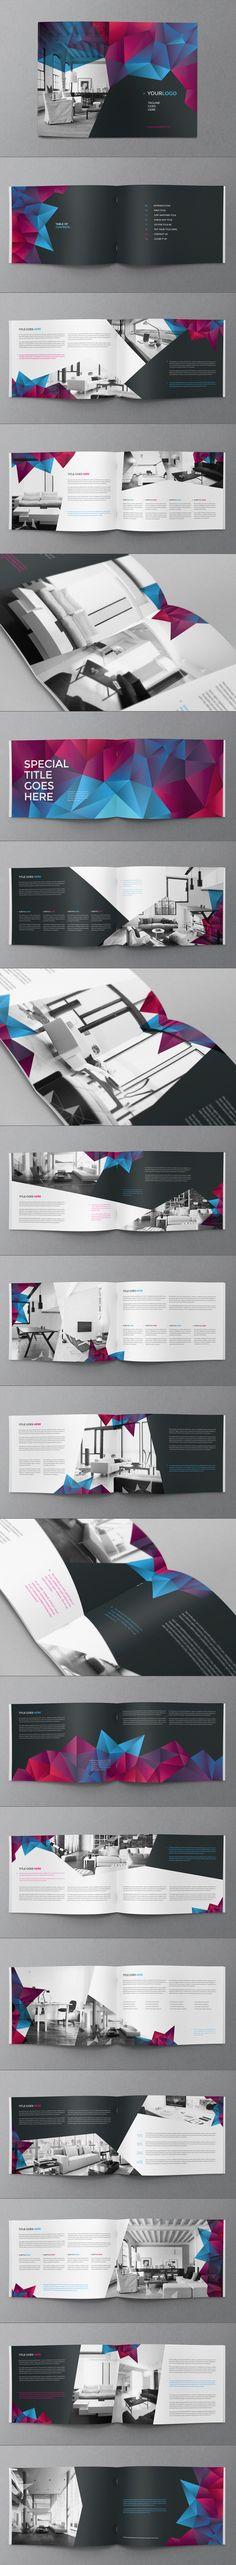 Cool Modern Brochure by Abra Design, via Behance